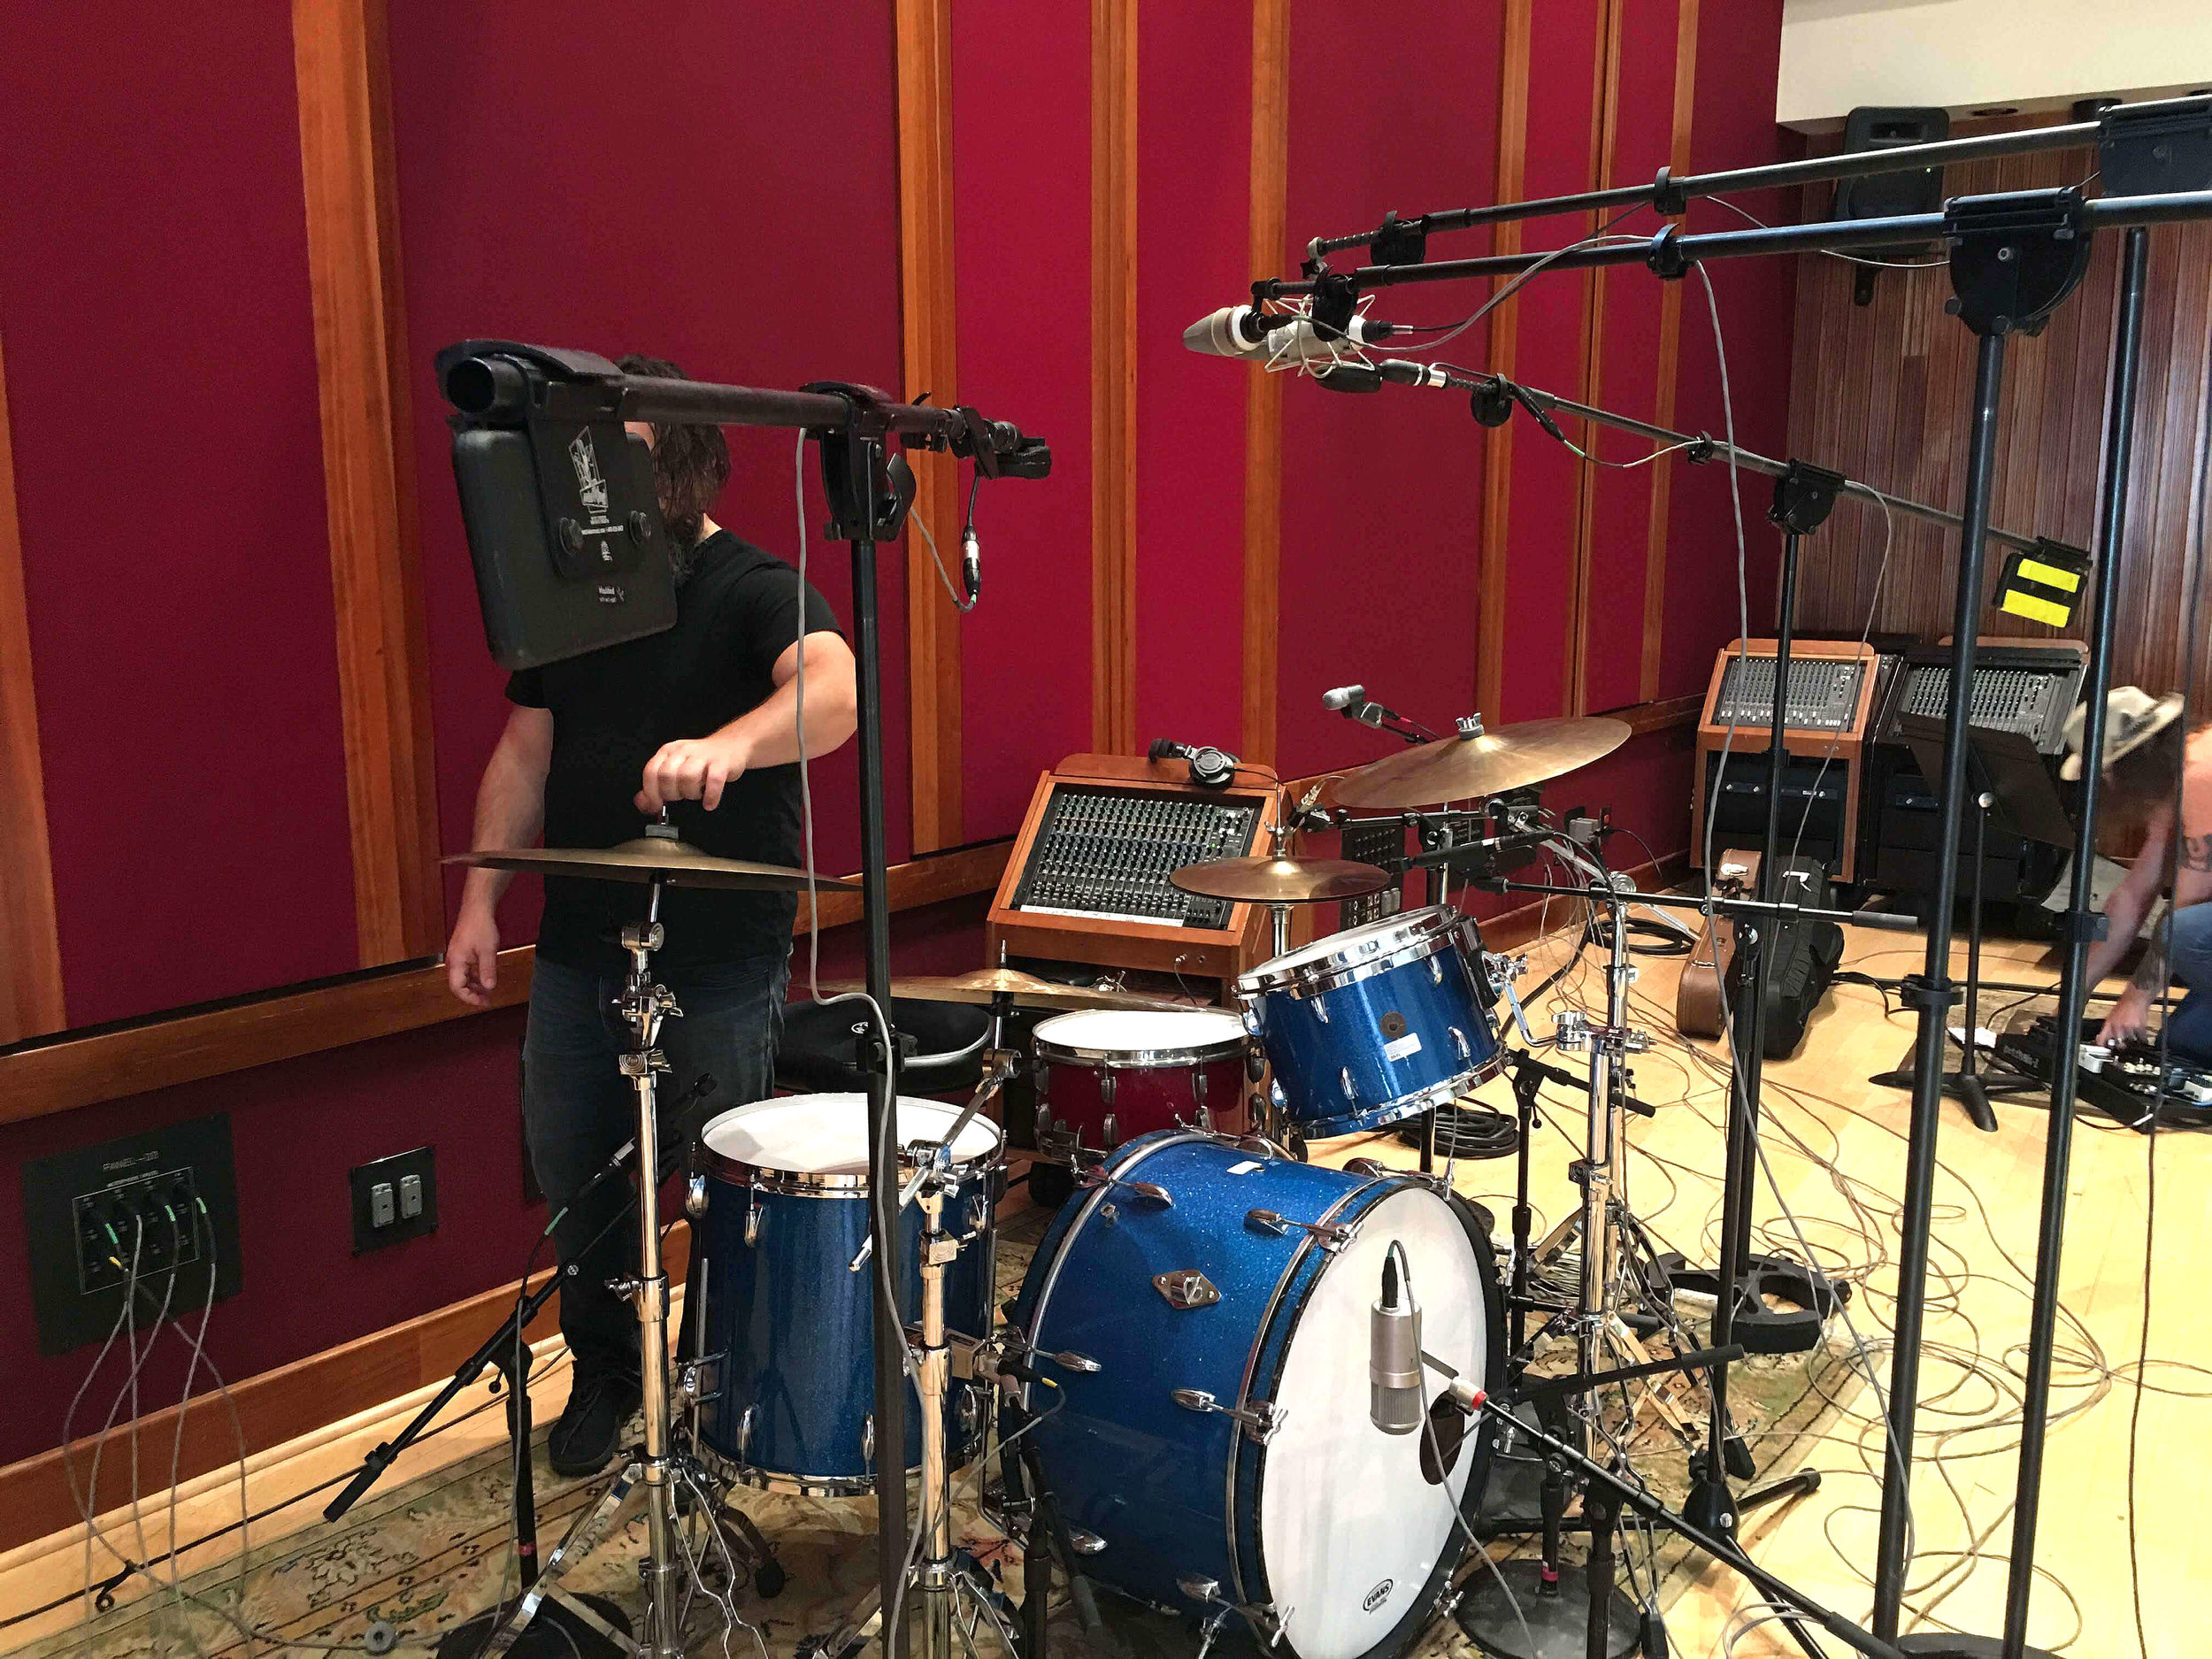 The kit was placed mid-room in Studio A at Blackbird. Drums sound excellent in this room no matter where you place them which is not the case in some large studios. In this case, it worked best for line of site to the other players.